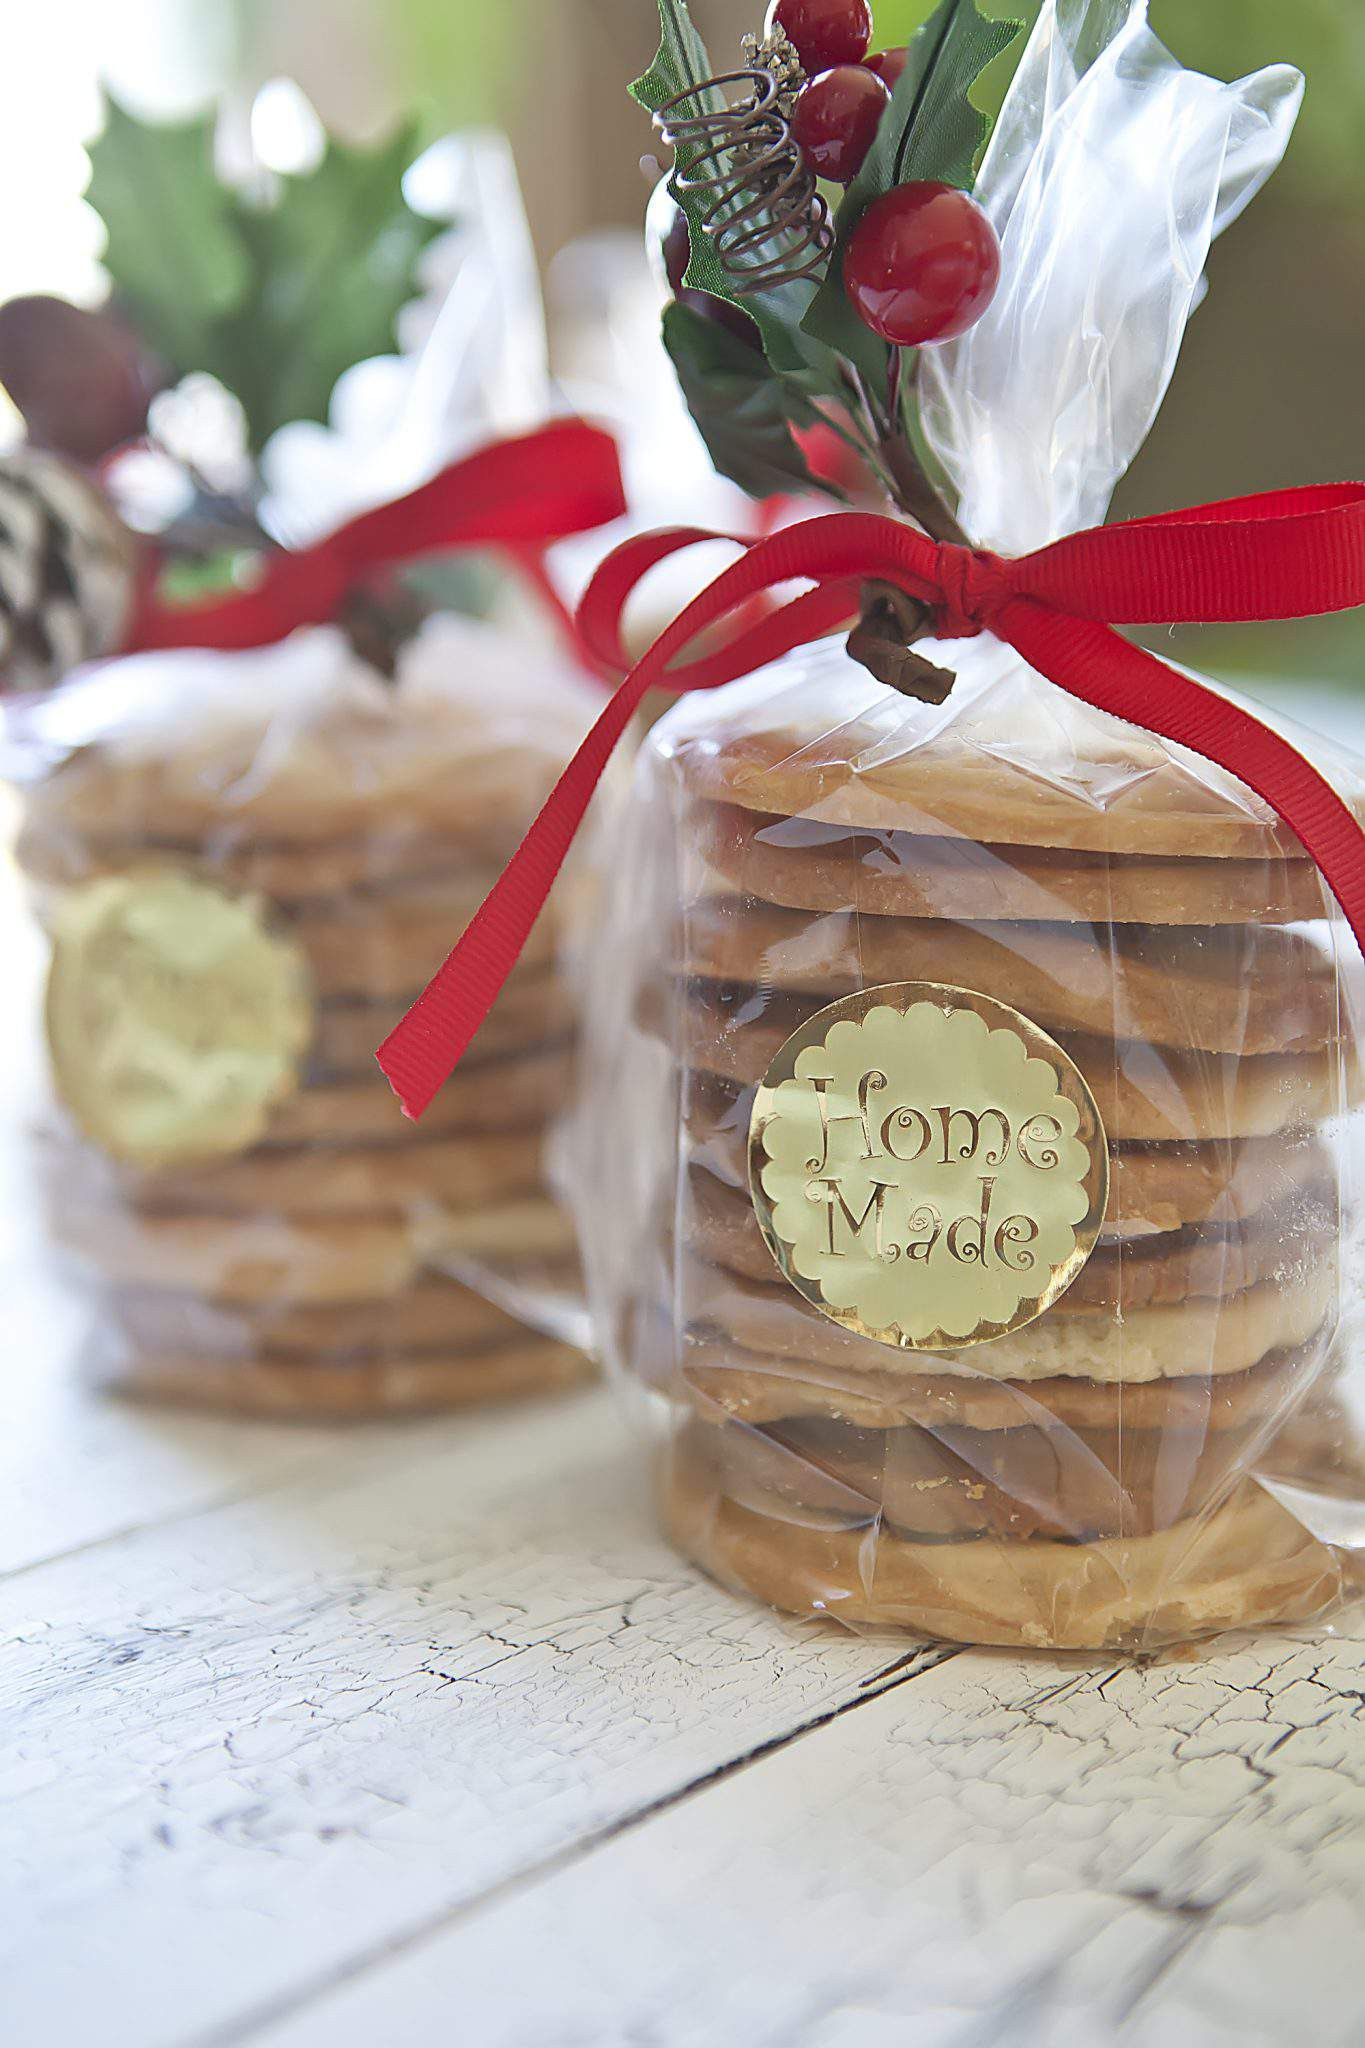 Best ideas about Cookie Gift Ideas . Save or Pin Celebrate Creativity Now.